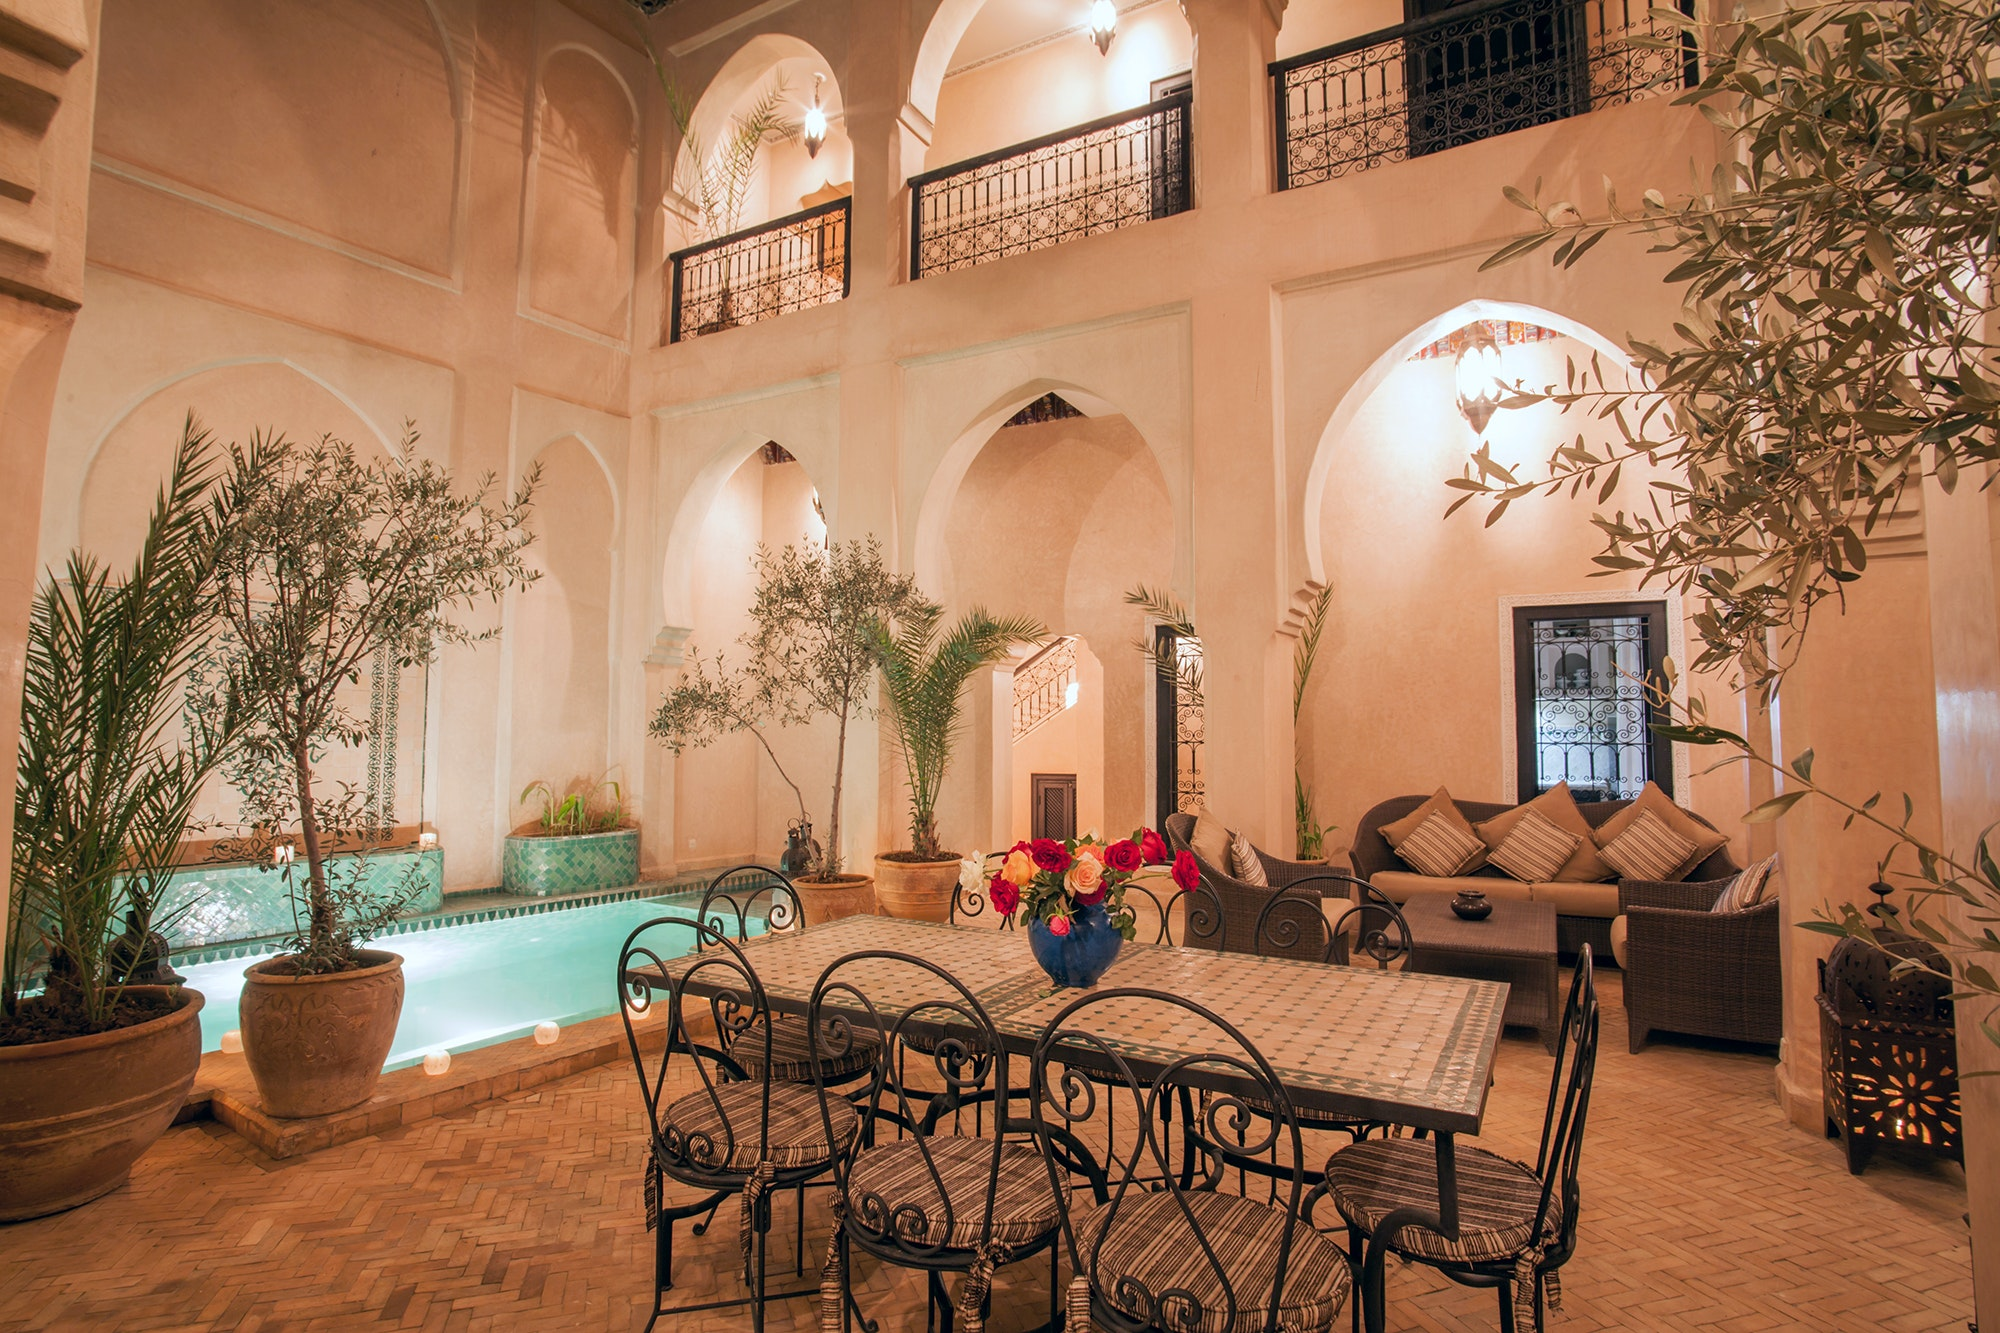 The Maison Dana Marrakech features five bedrooms and a courtyard pool.